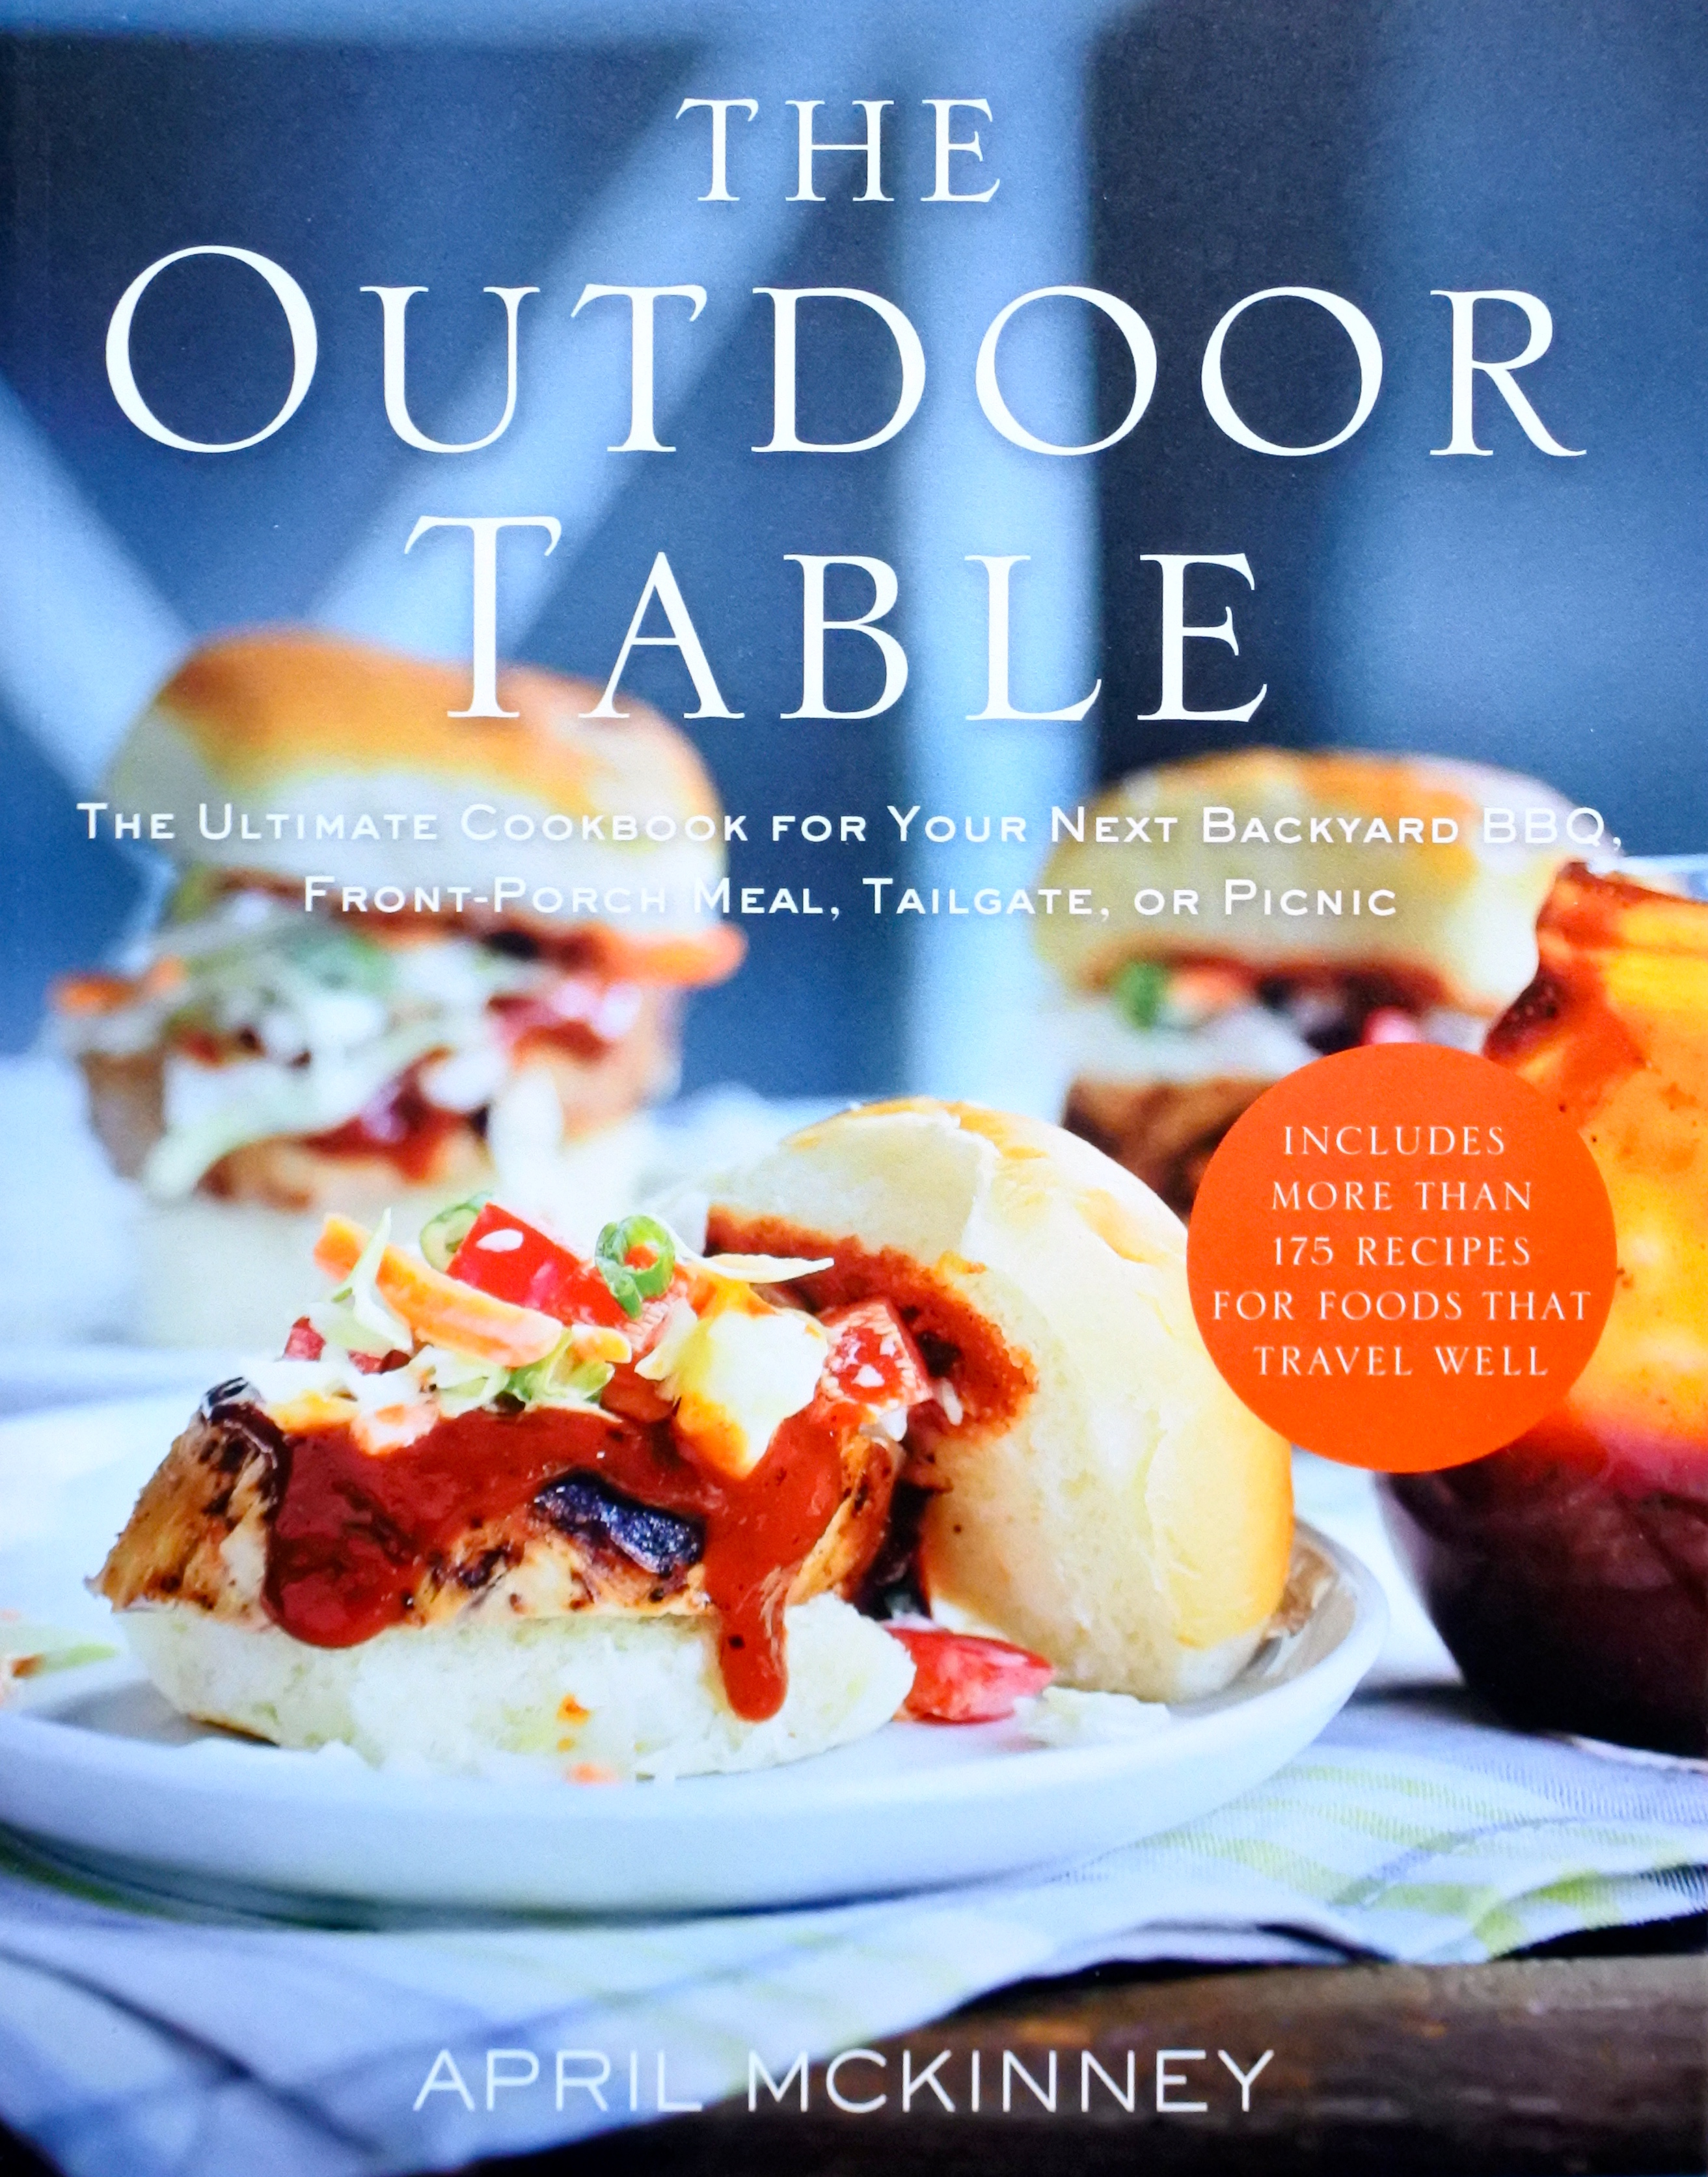 Cookbook cover with Sliders